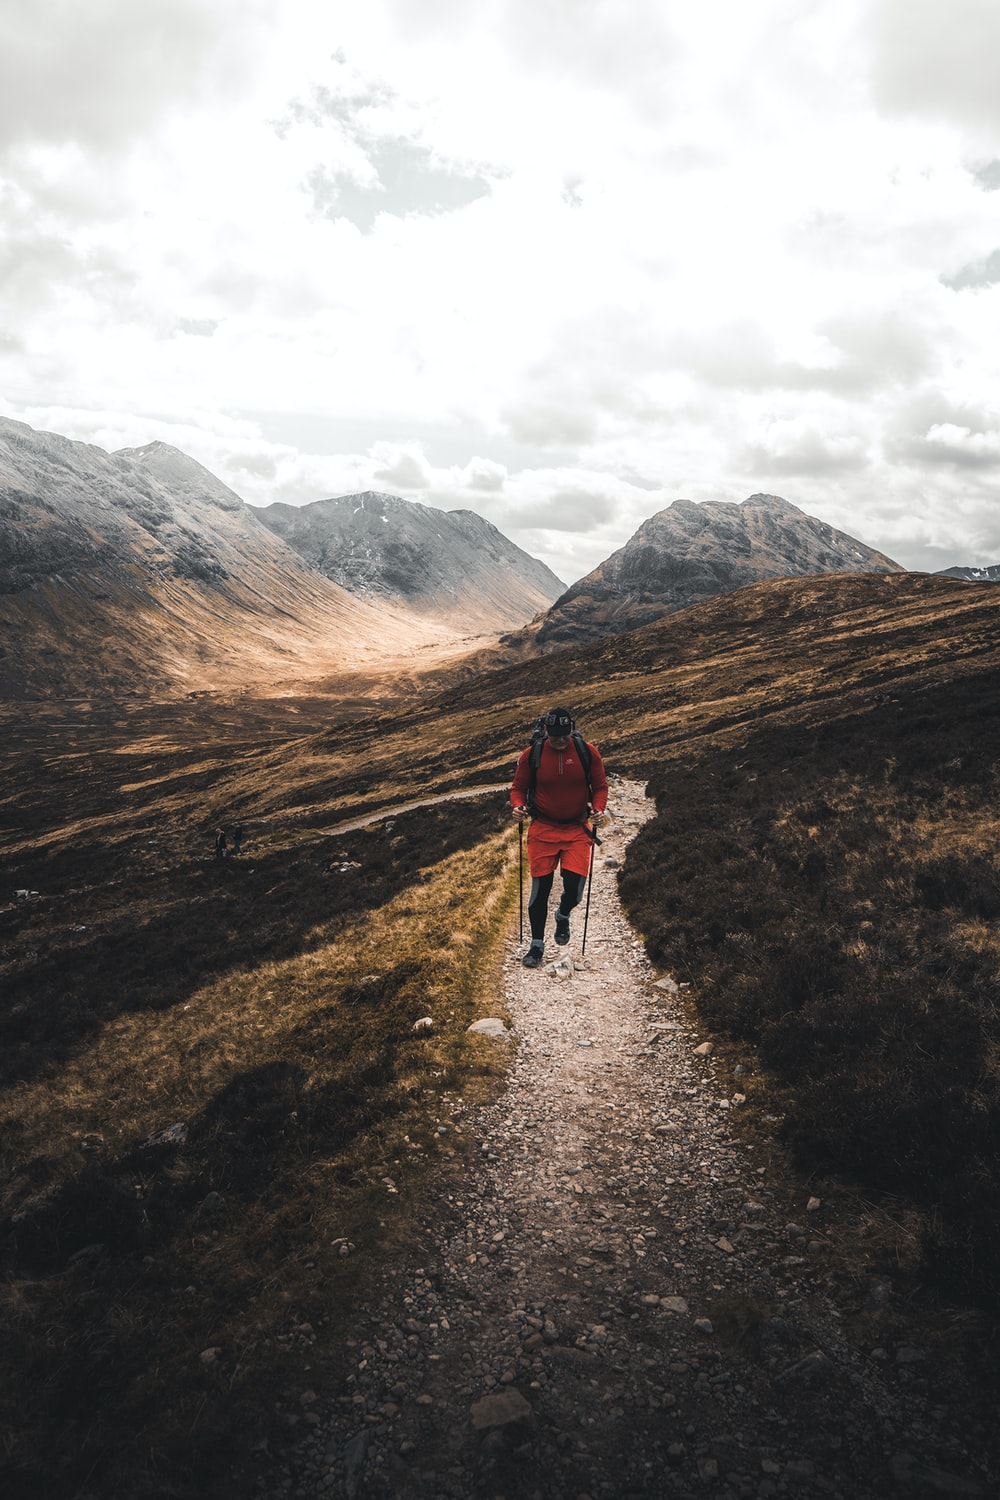 man walking on road under dramatic clouds